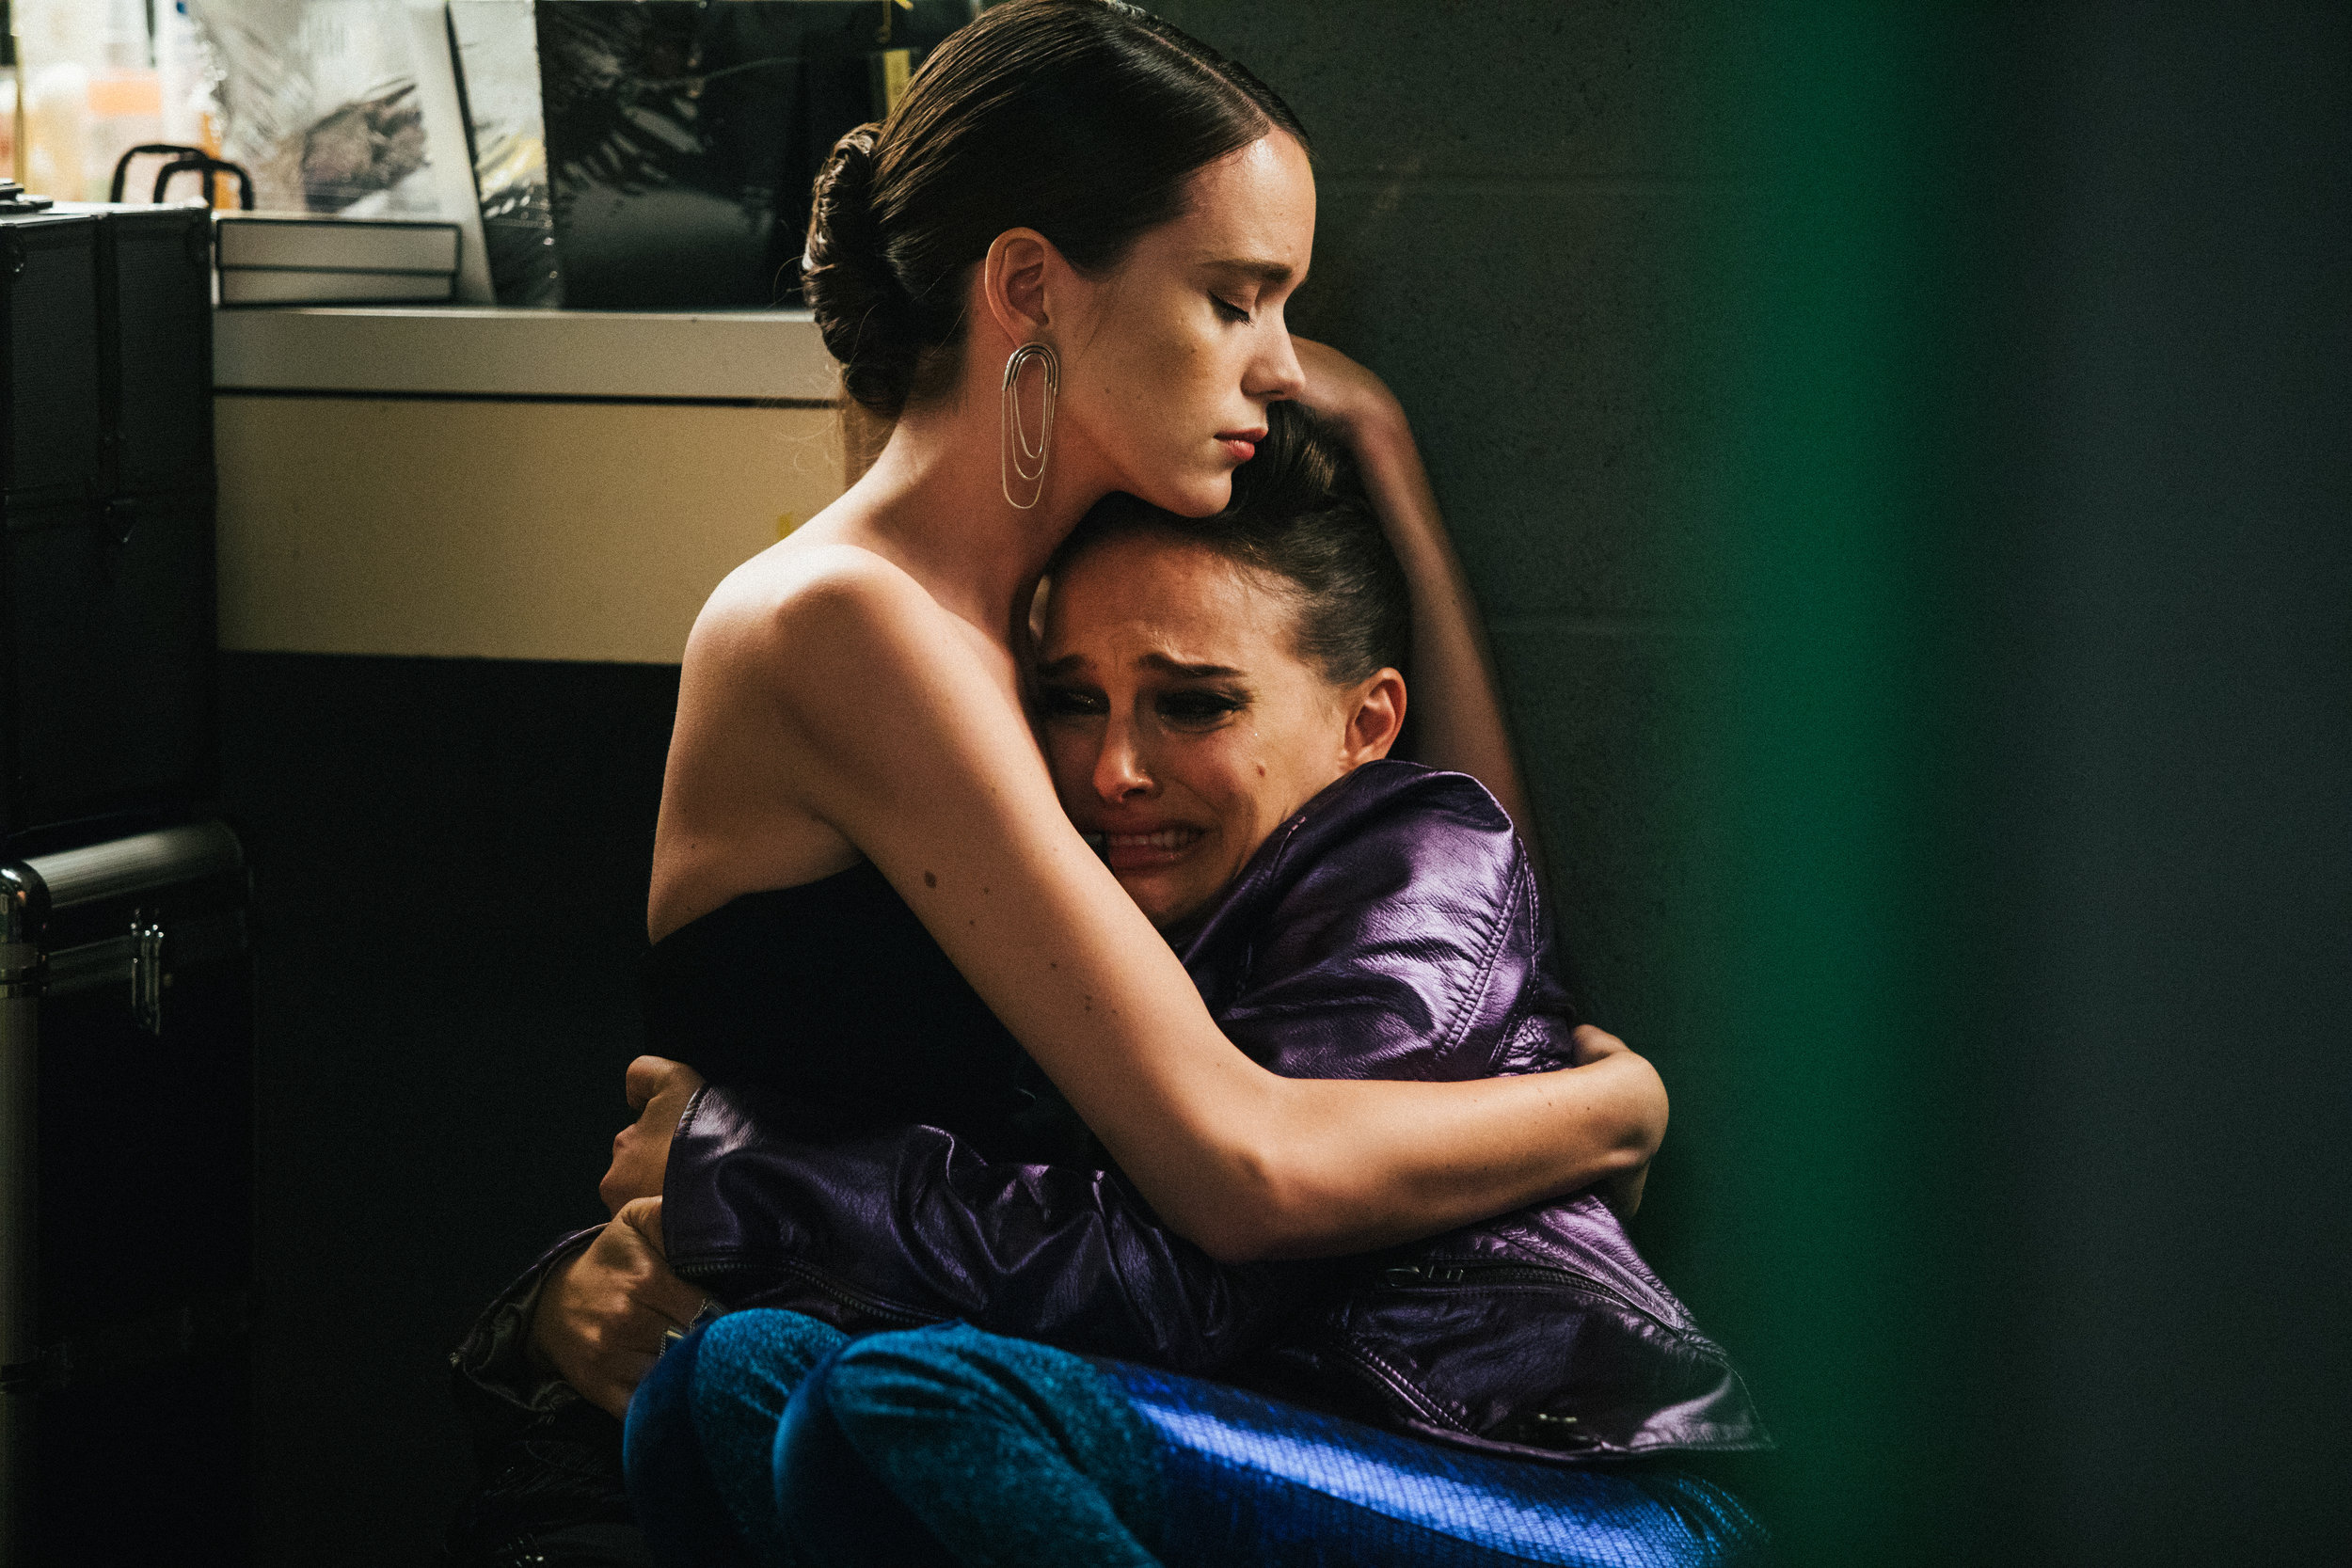 Eleanor (Stacy Martin) and Celeste (Natalie Portman) in VOX LUX. Courtesy of NEON.